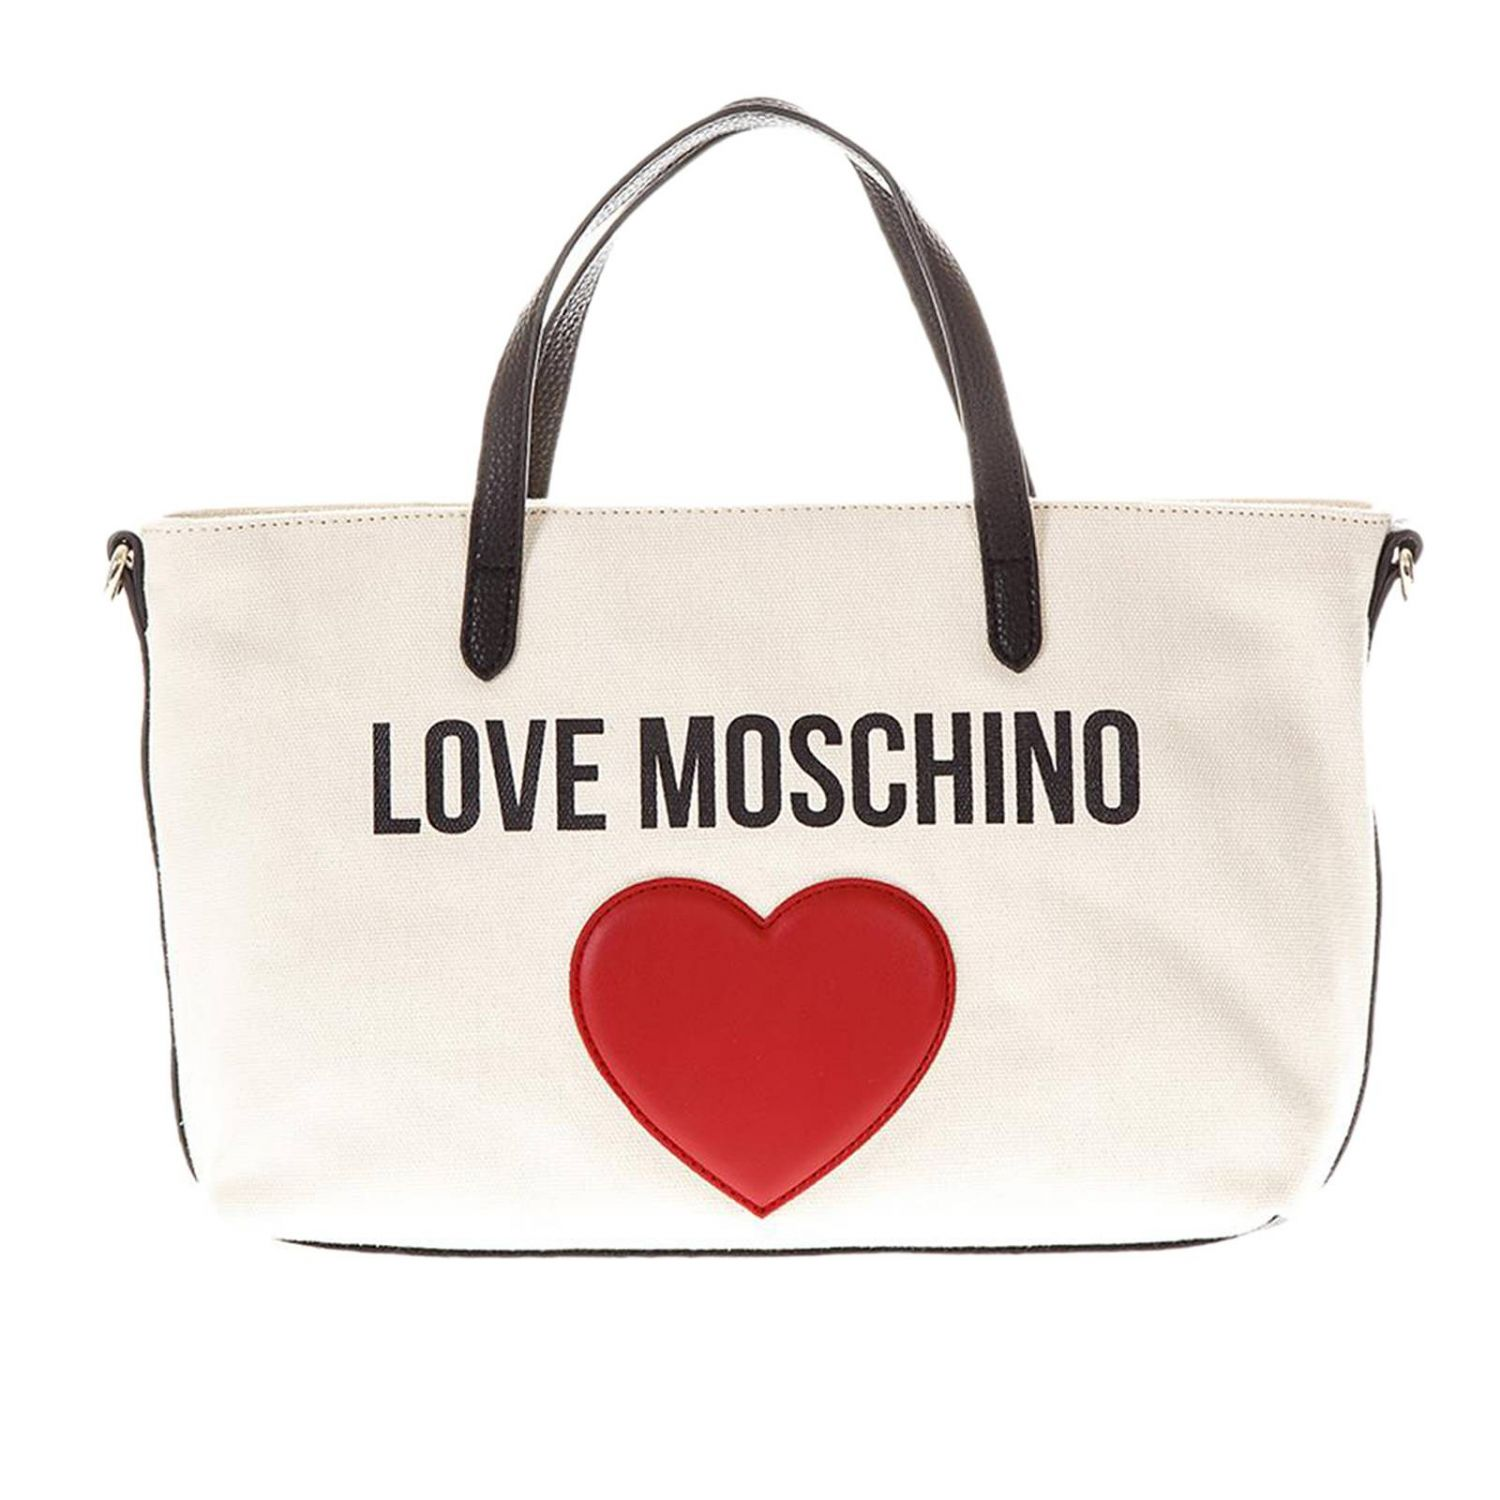 Handbag Handbag Women Moschino Love 8406580